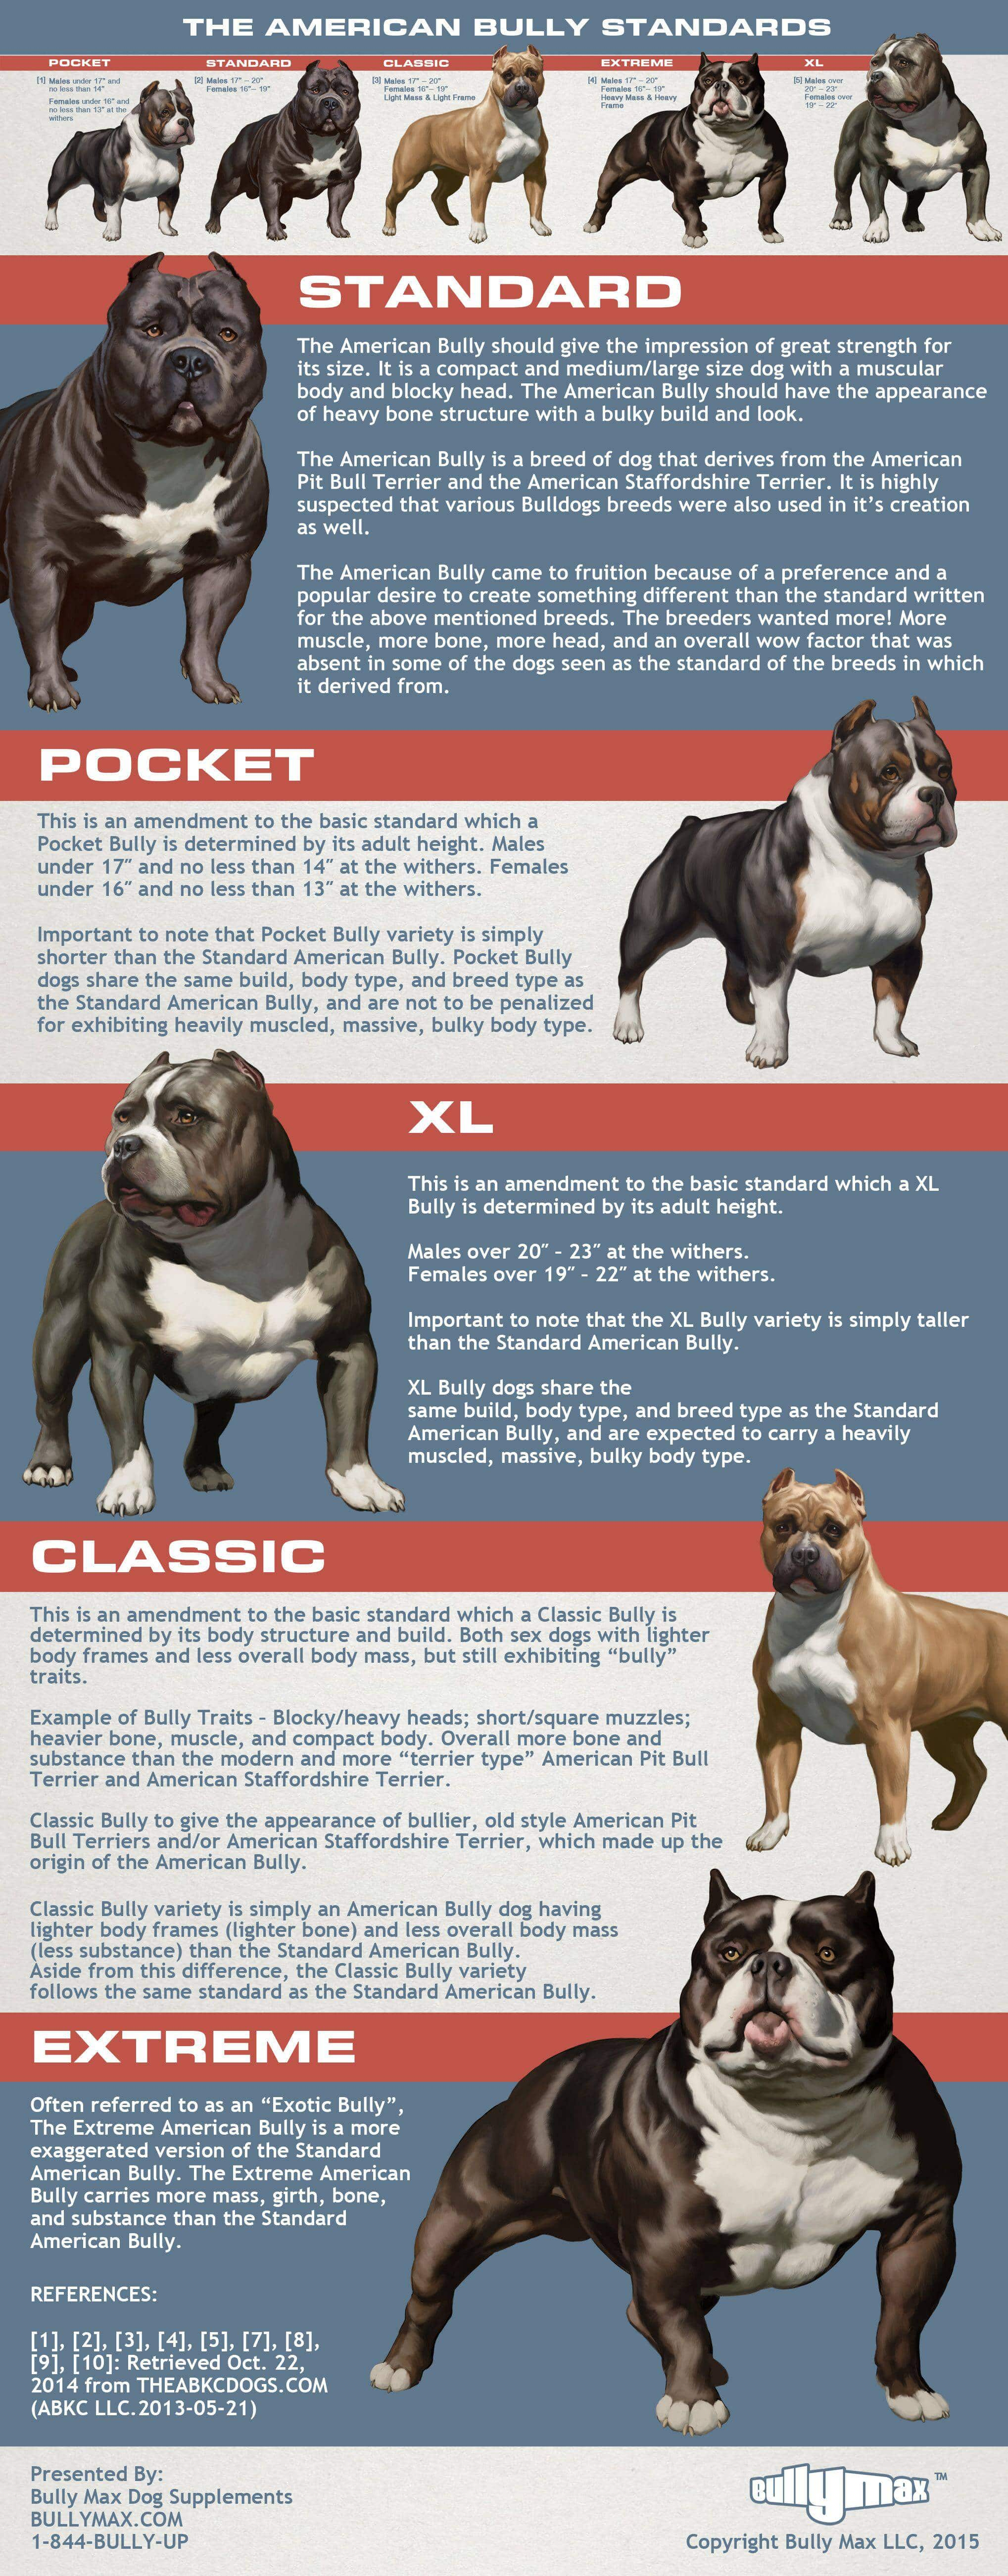 Different Kinds Pit Bull Breeds